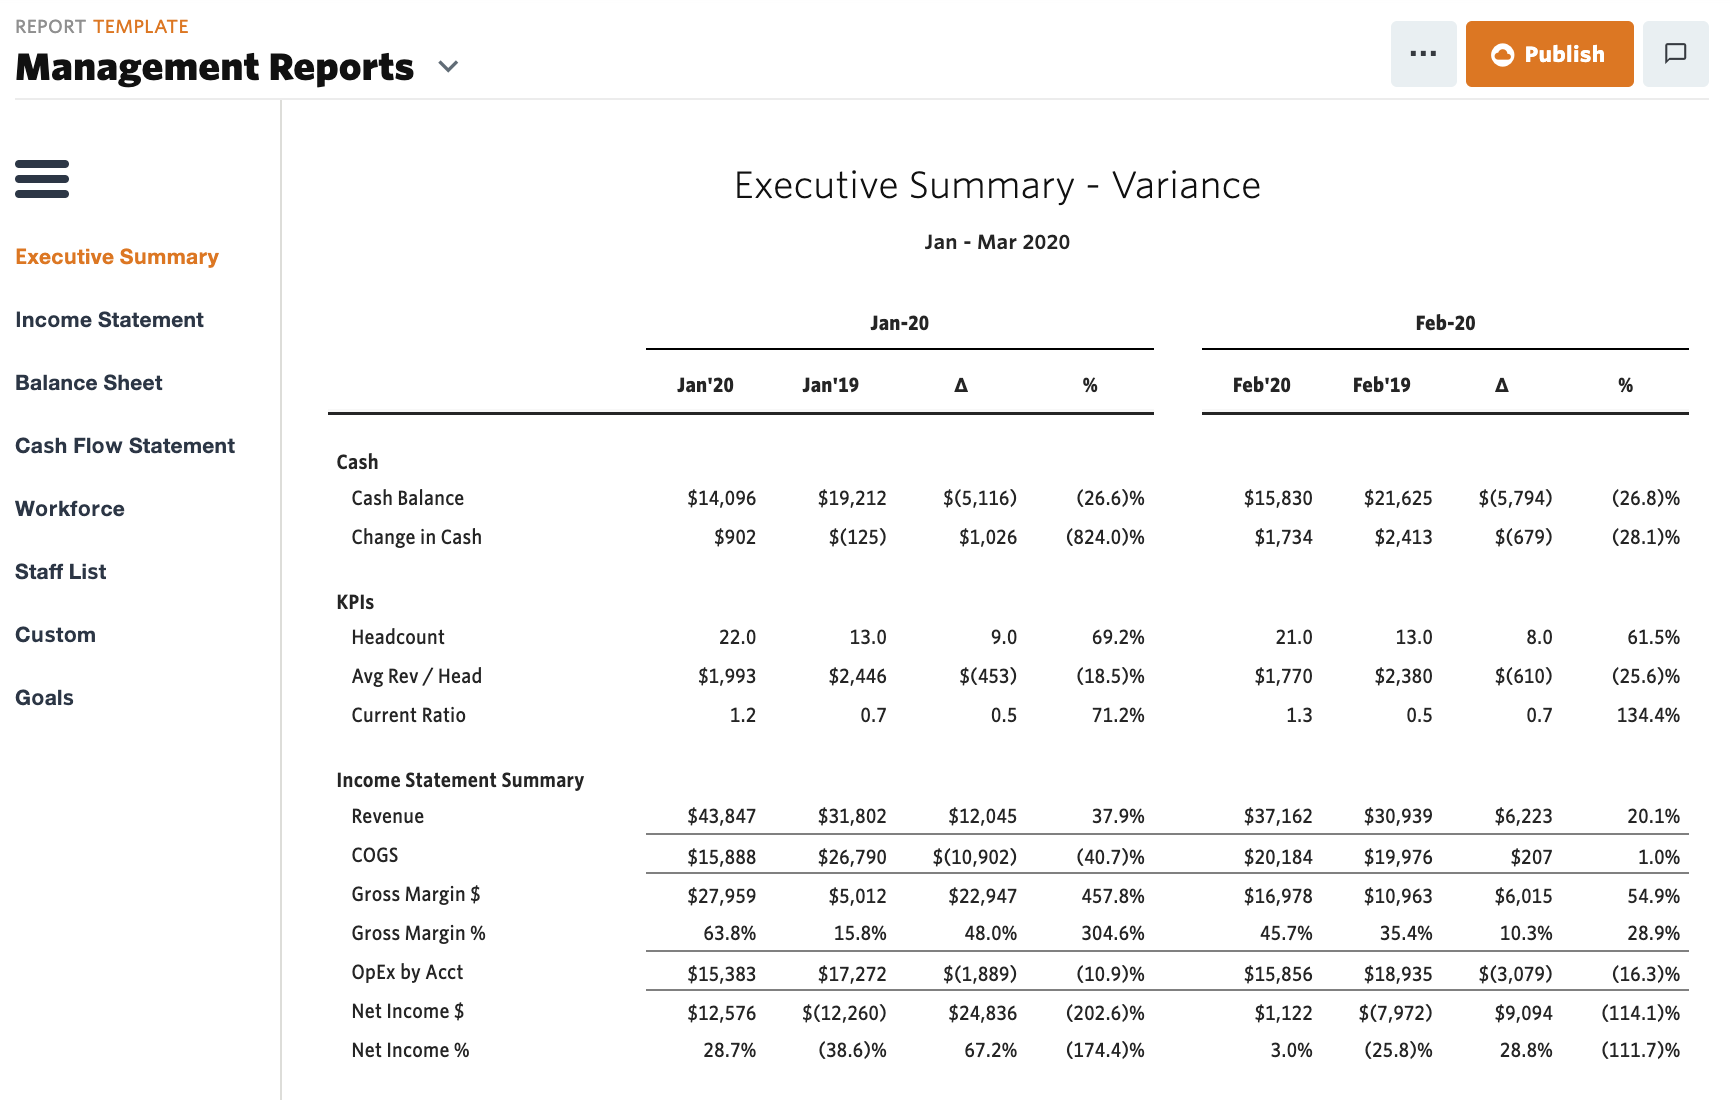 reports-exec-summary-variance